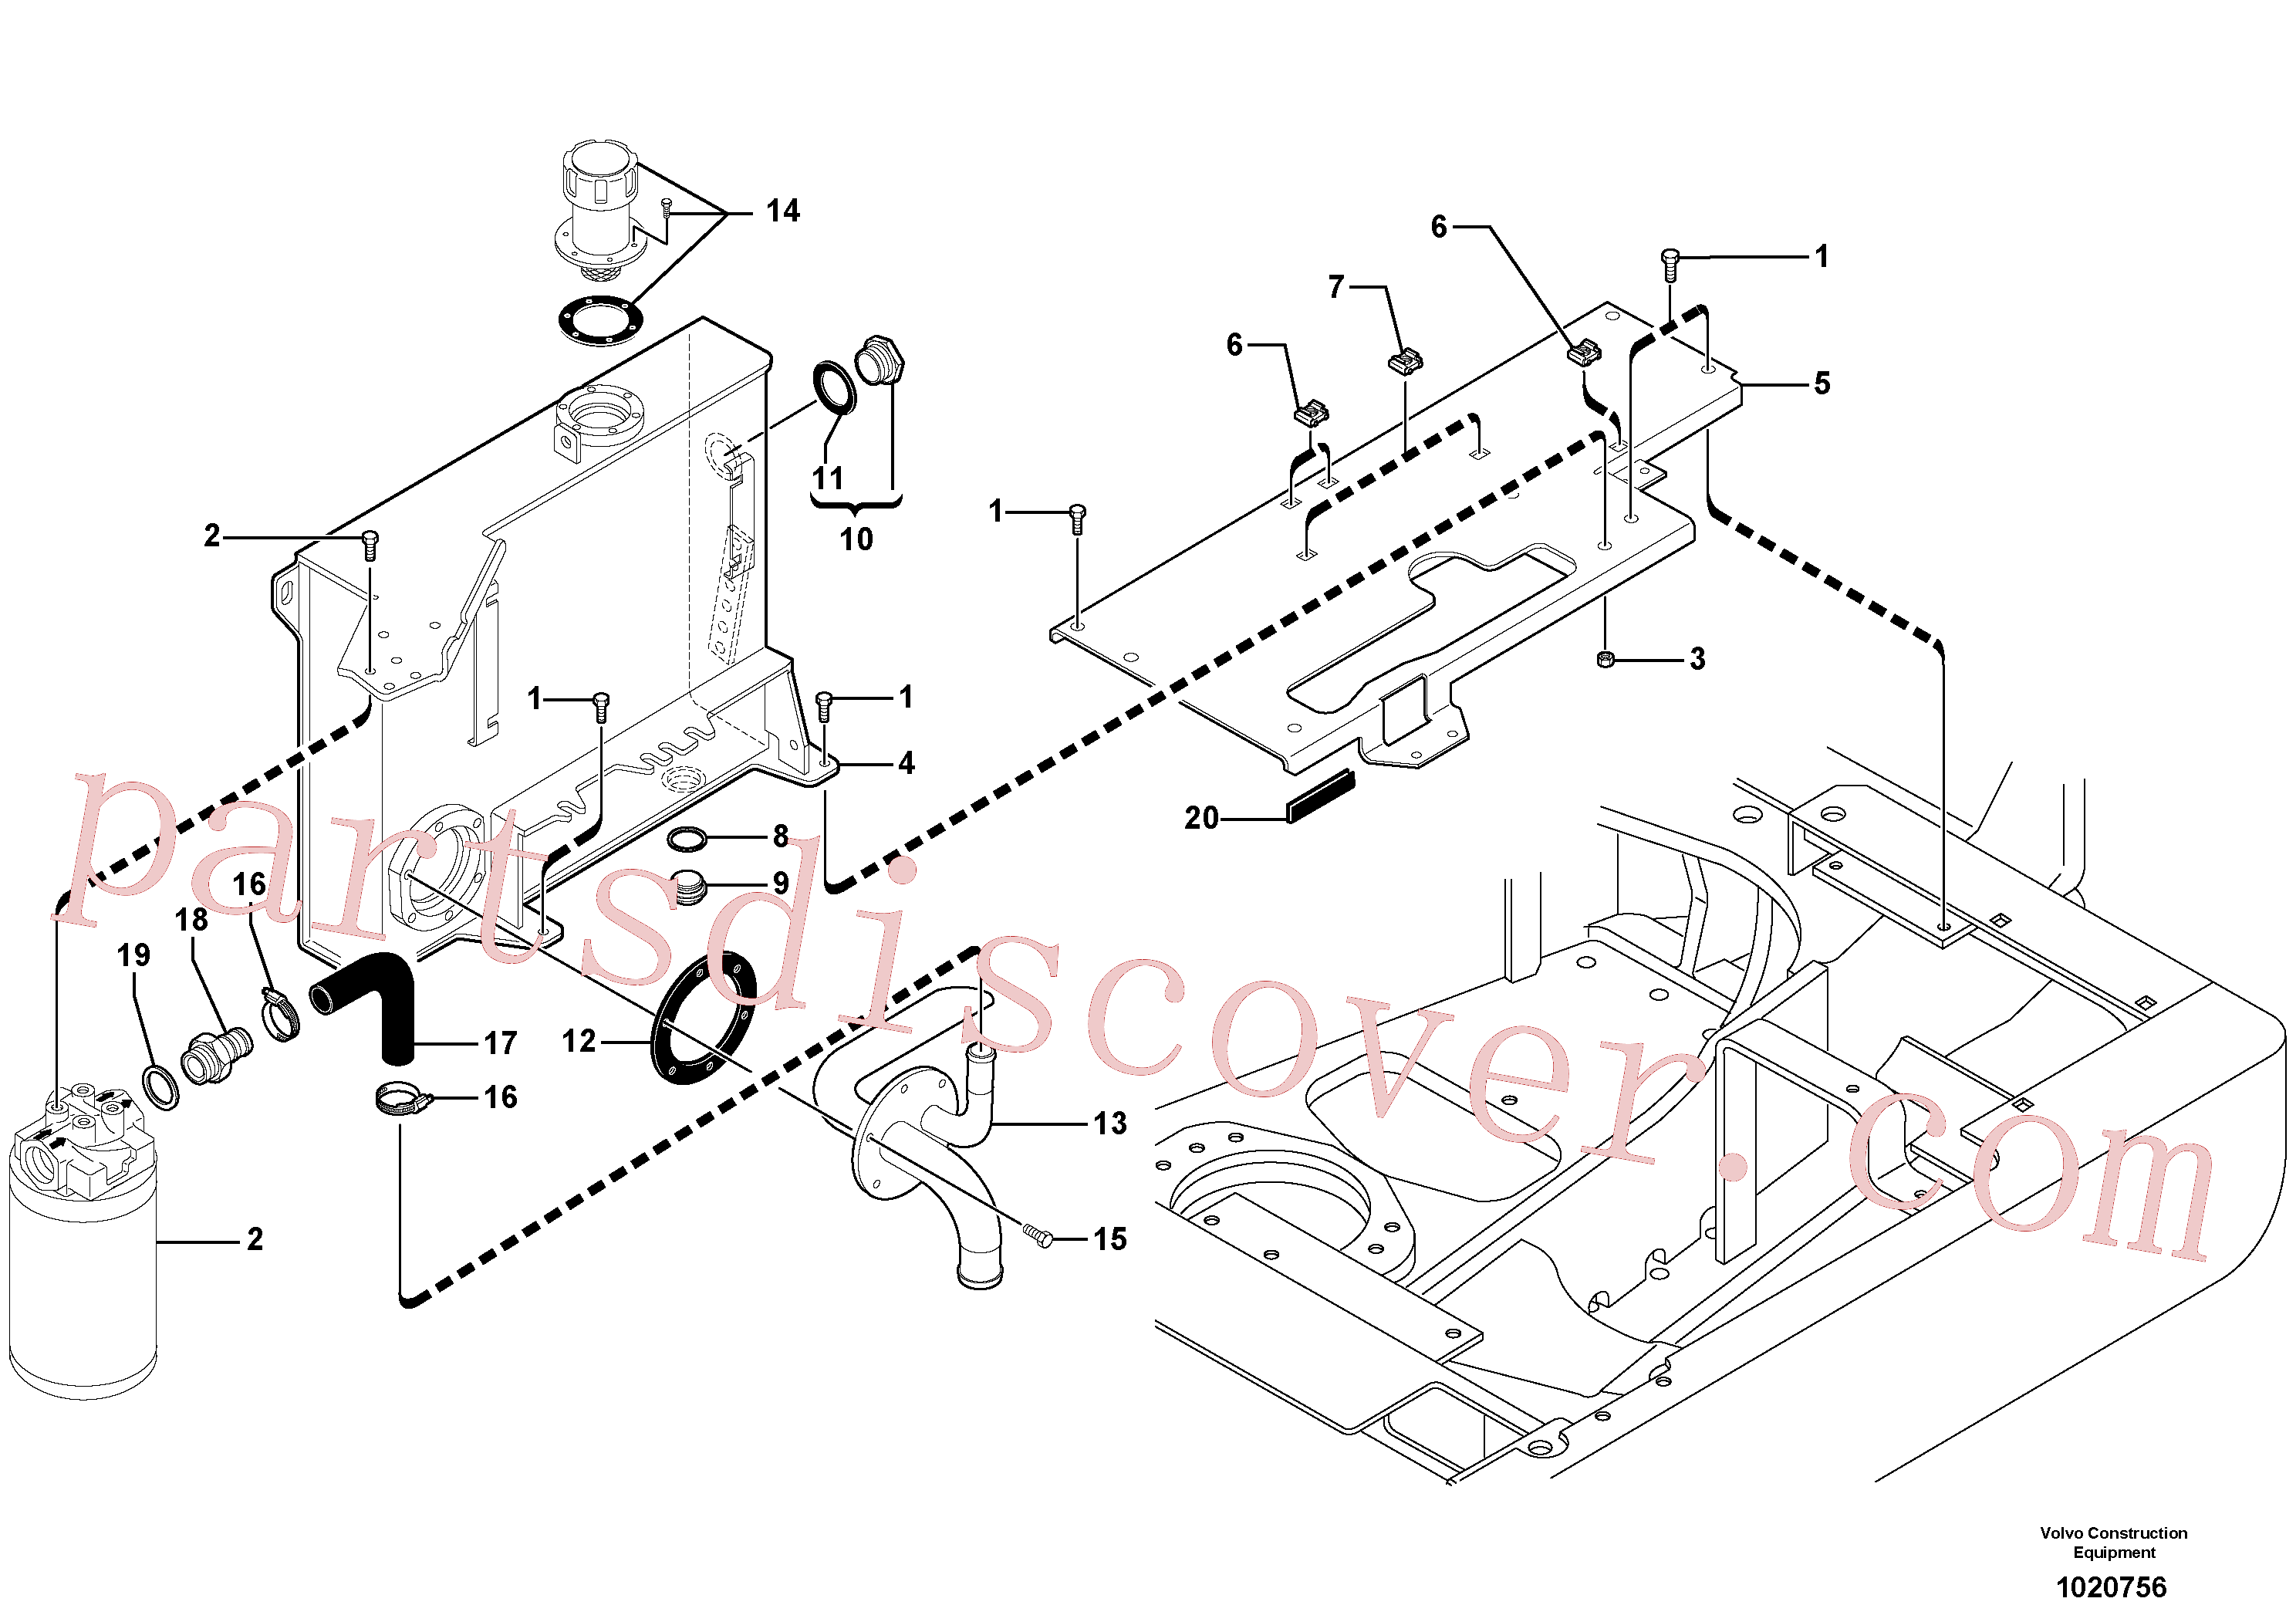 PJ3812233 Support for Volvo Excavator Parts